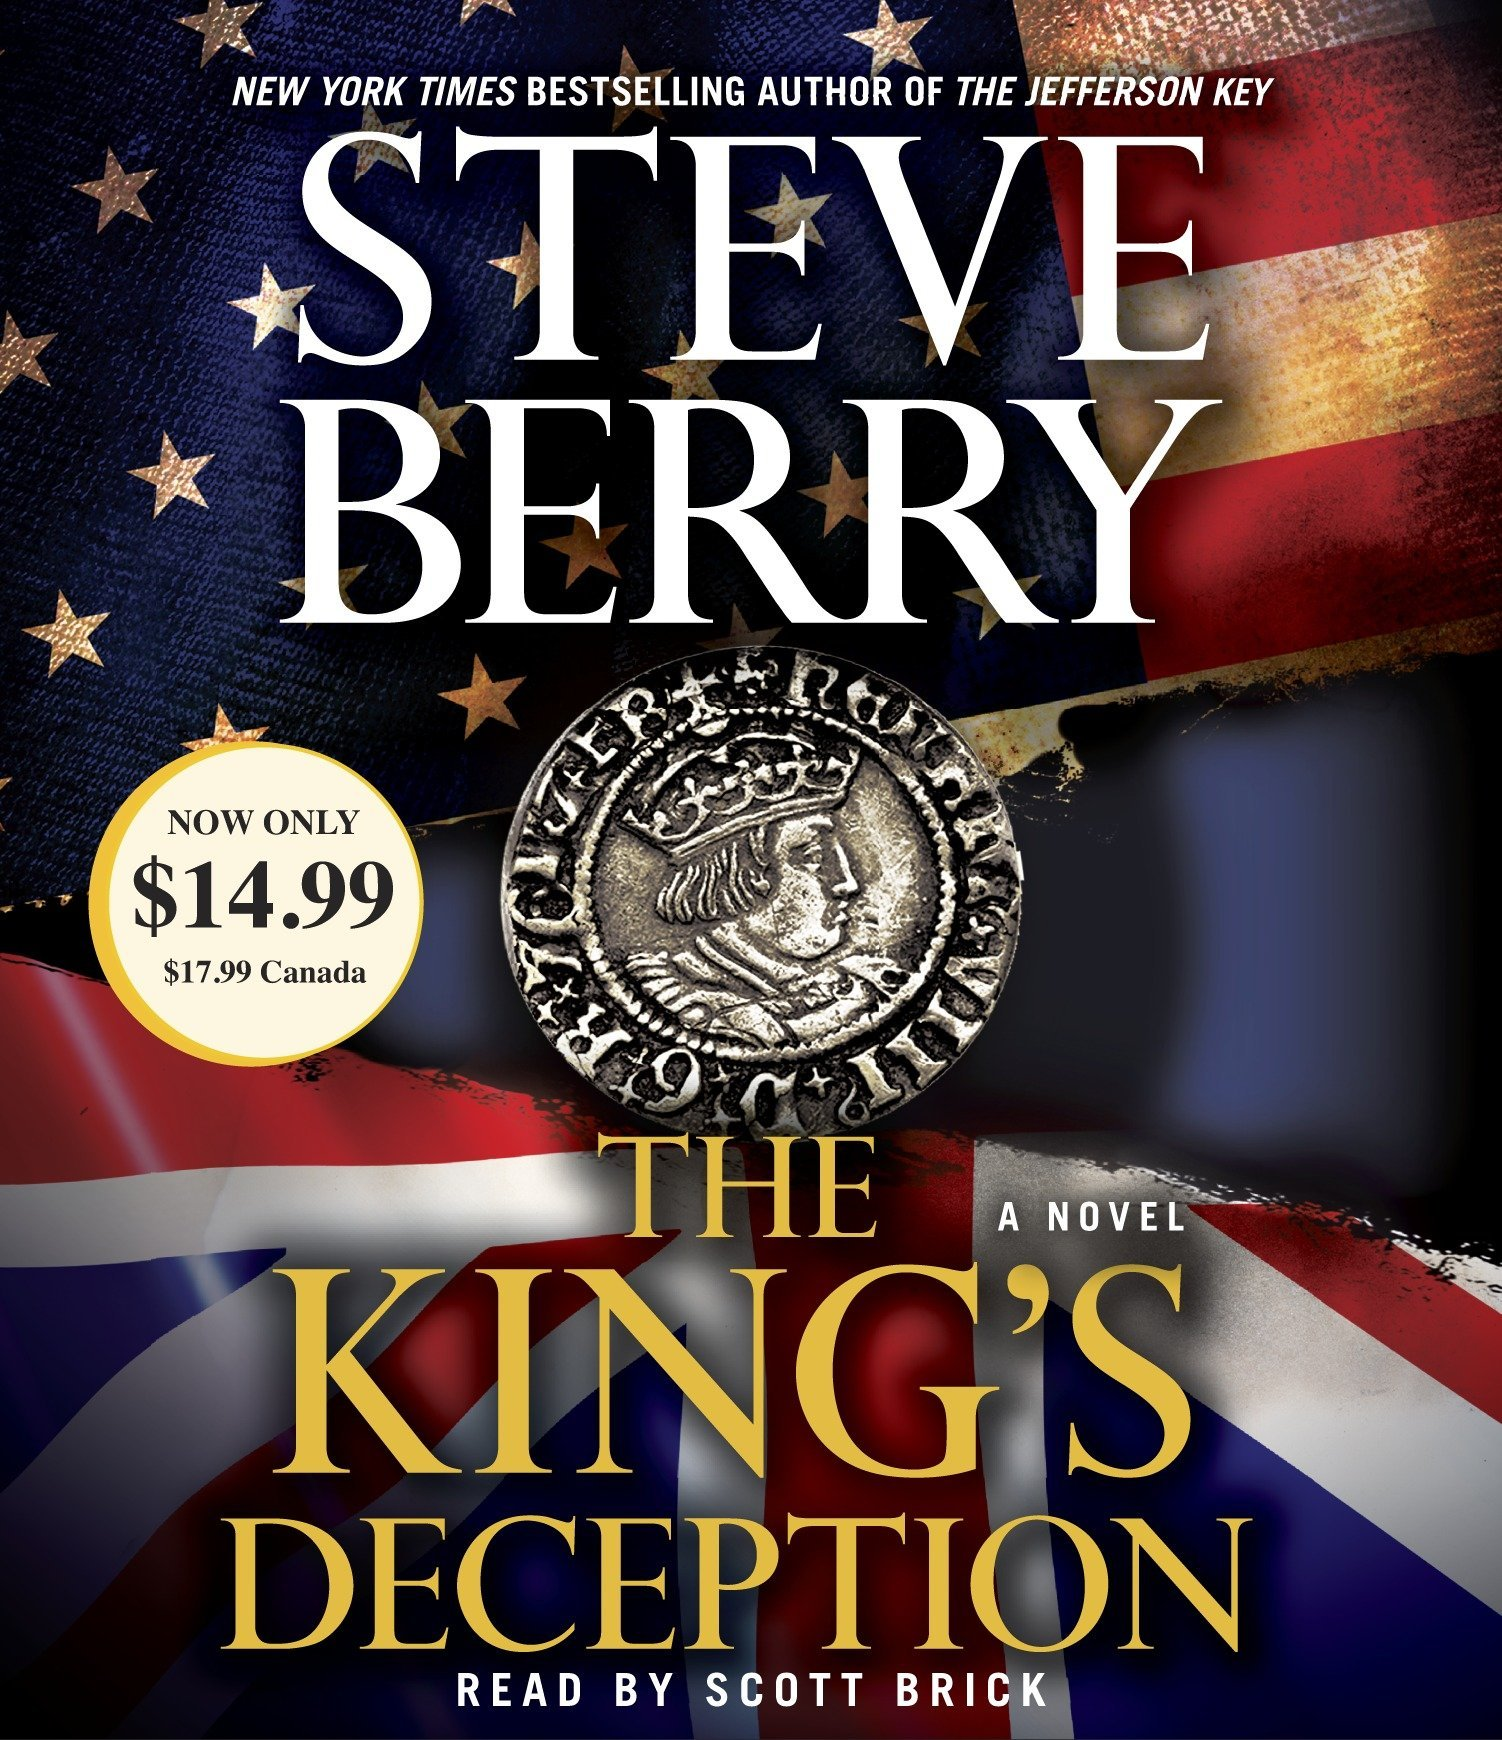 Buy The King's Deception: A Novel (Cotton Malone) Book Online at Low Prices  in India | The King's Deception: A Novel (Cotton Malone) Reviews & Ratings  ...